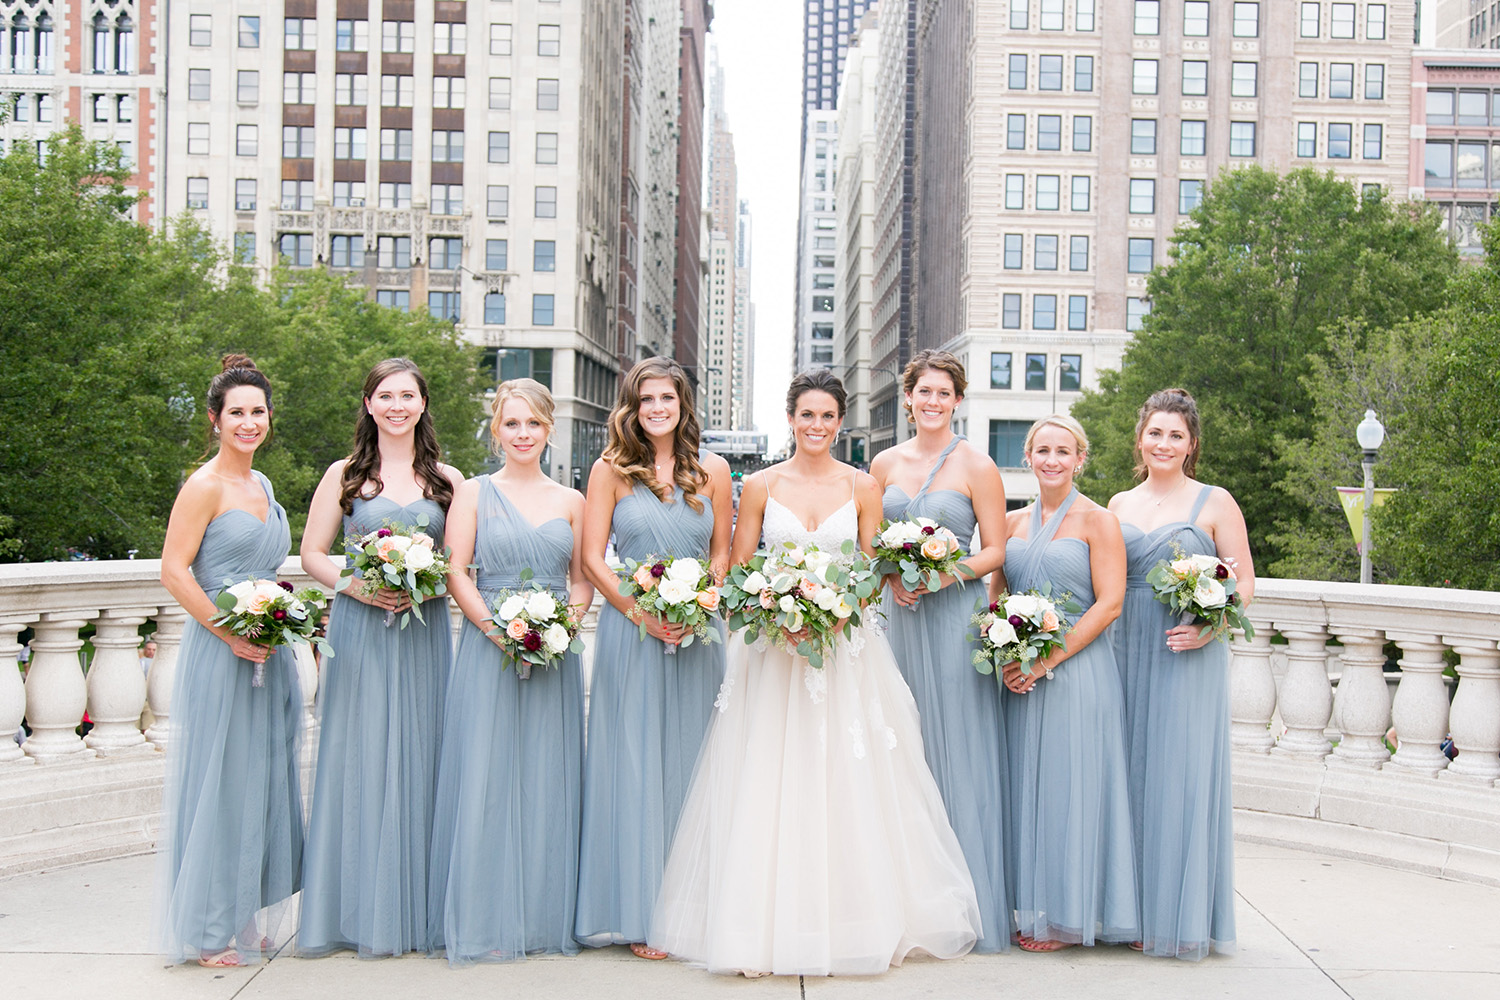 bridesmaids-dresses-wedding-gowns-chicago-venues-planners-coordinator-engaging-events-by-ali-10twelve